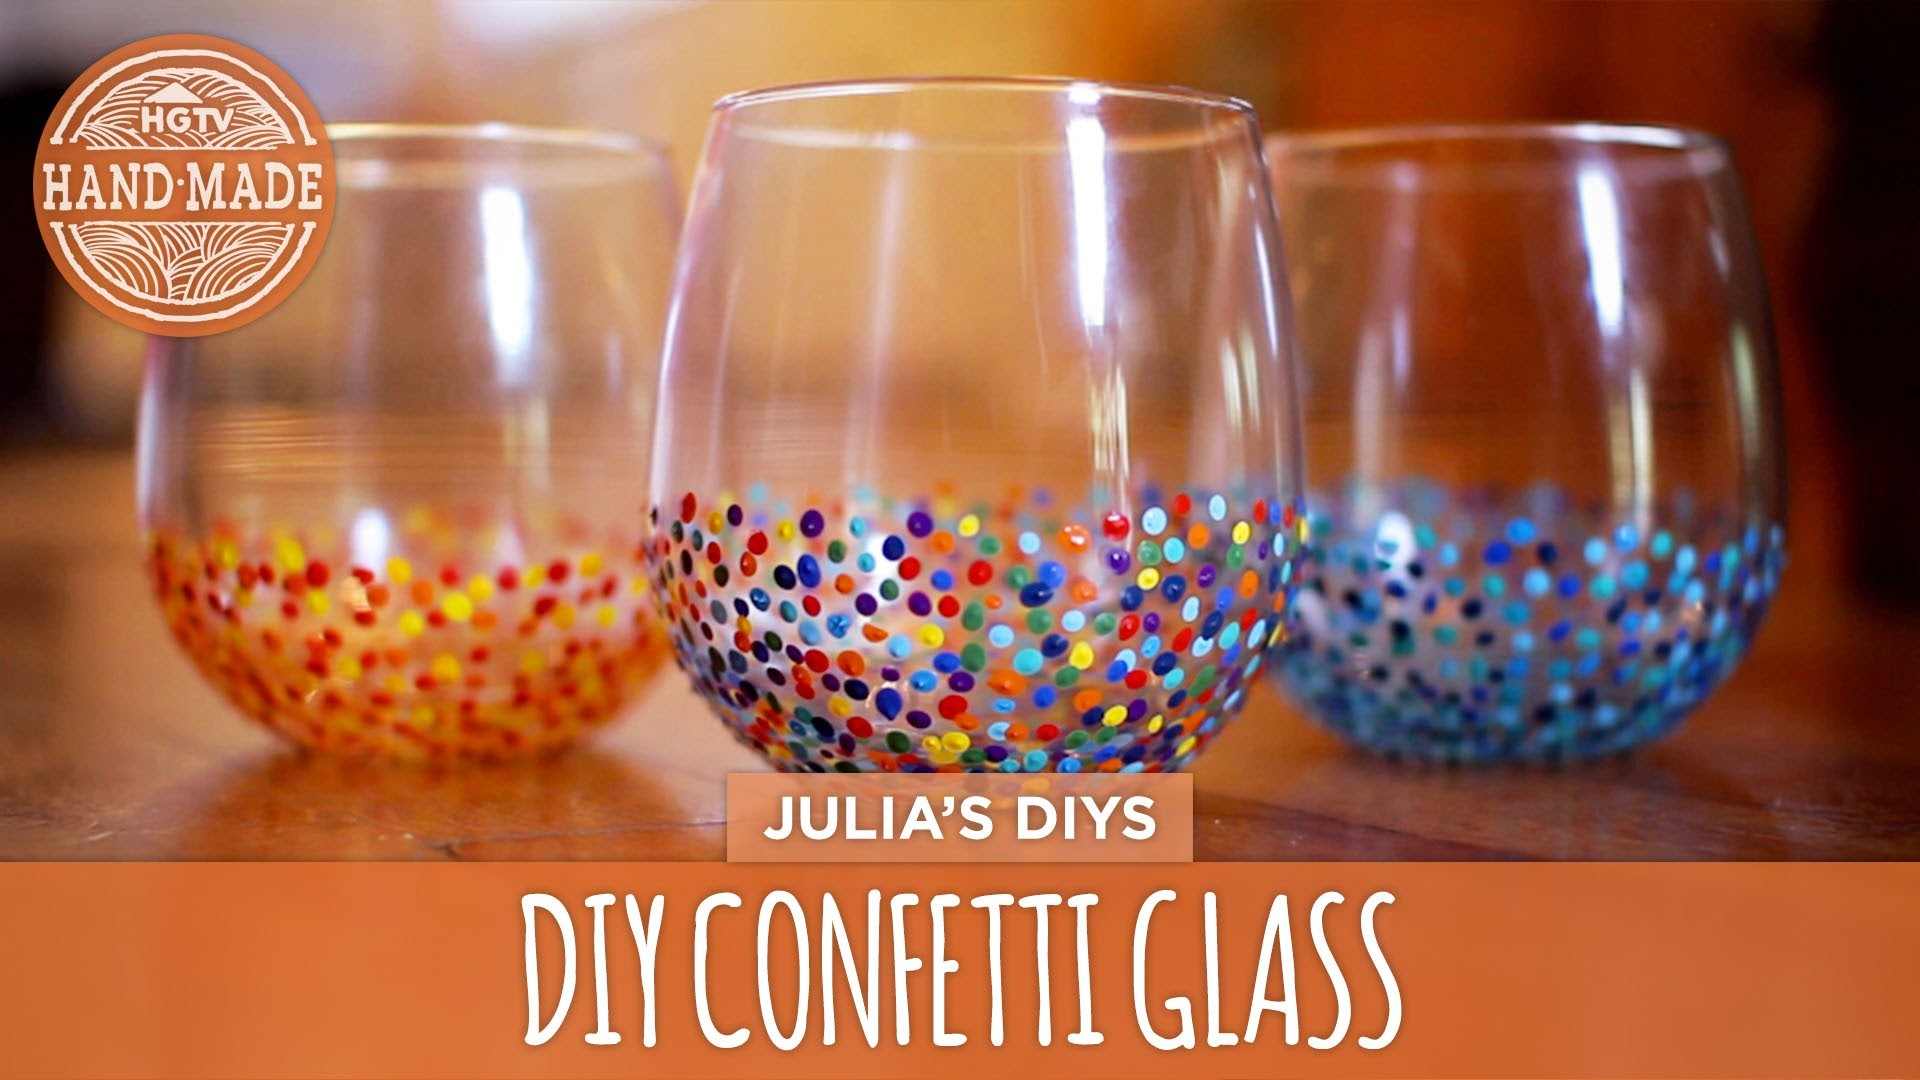 DIY Confetti Glasses - HGTV Handmade